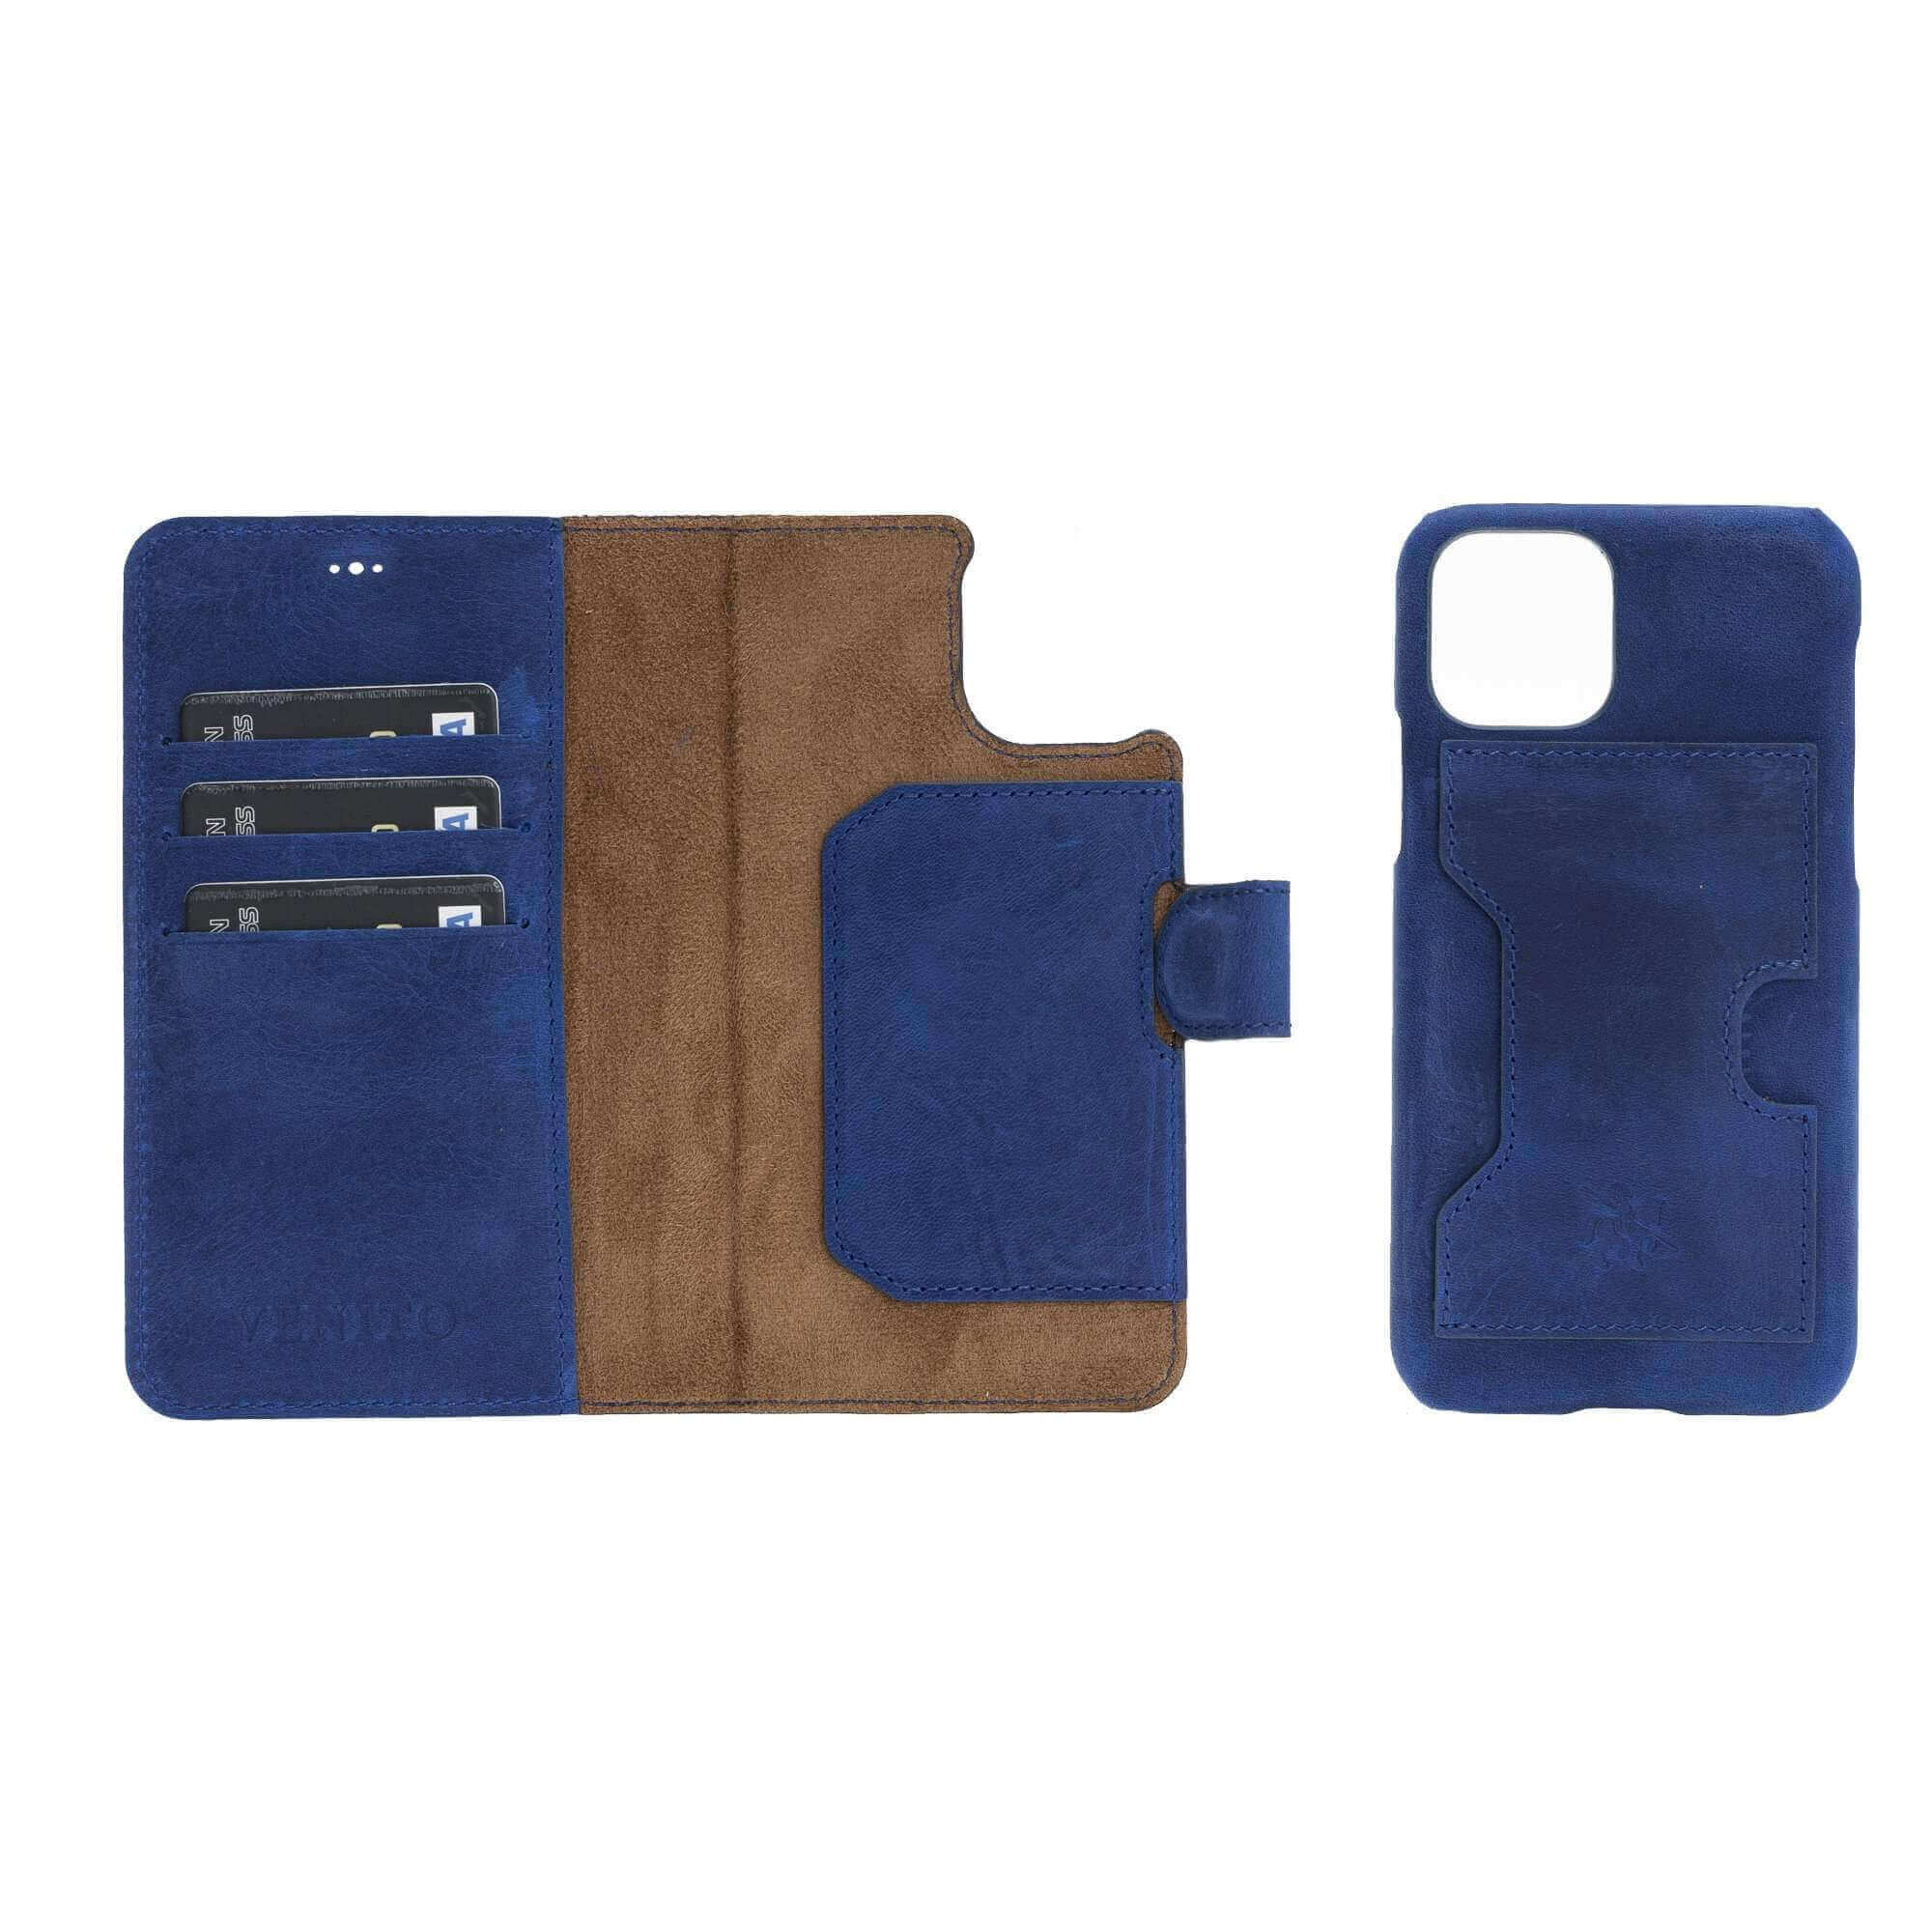 Best Leather Case for iPhone